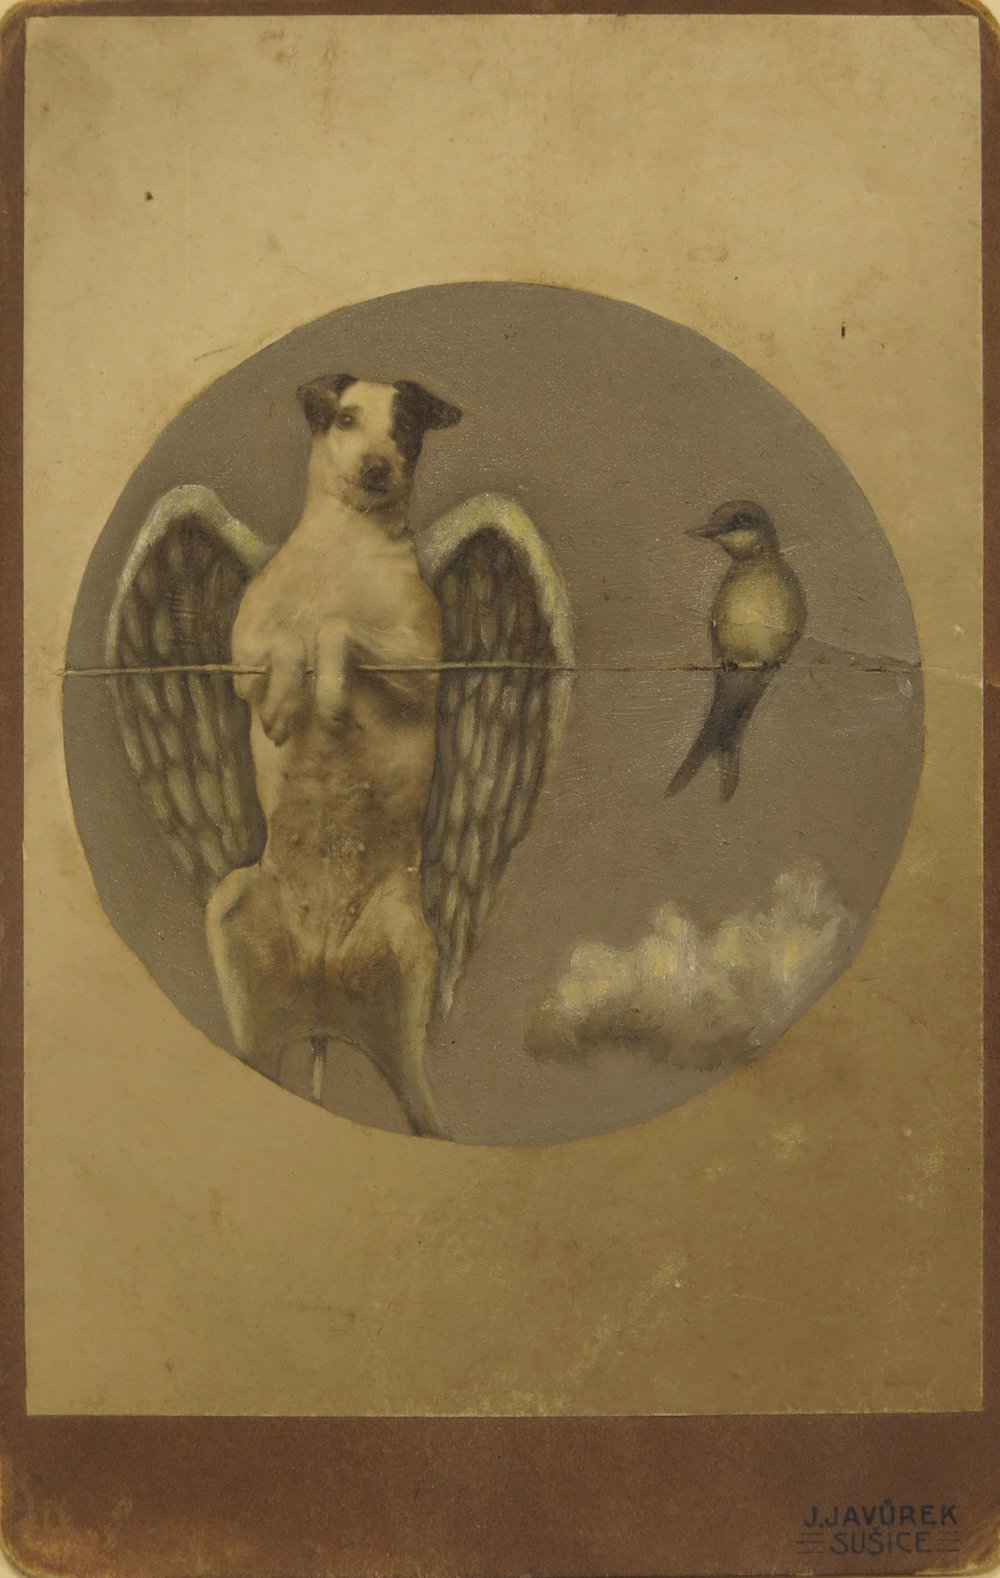 Jana Paleckova,  untitled (winged dog and bird on wire),  2016, oil paint on vintage photograph, 6 1/2h x 4w in.